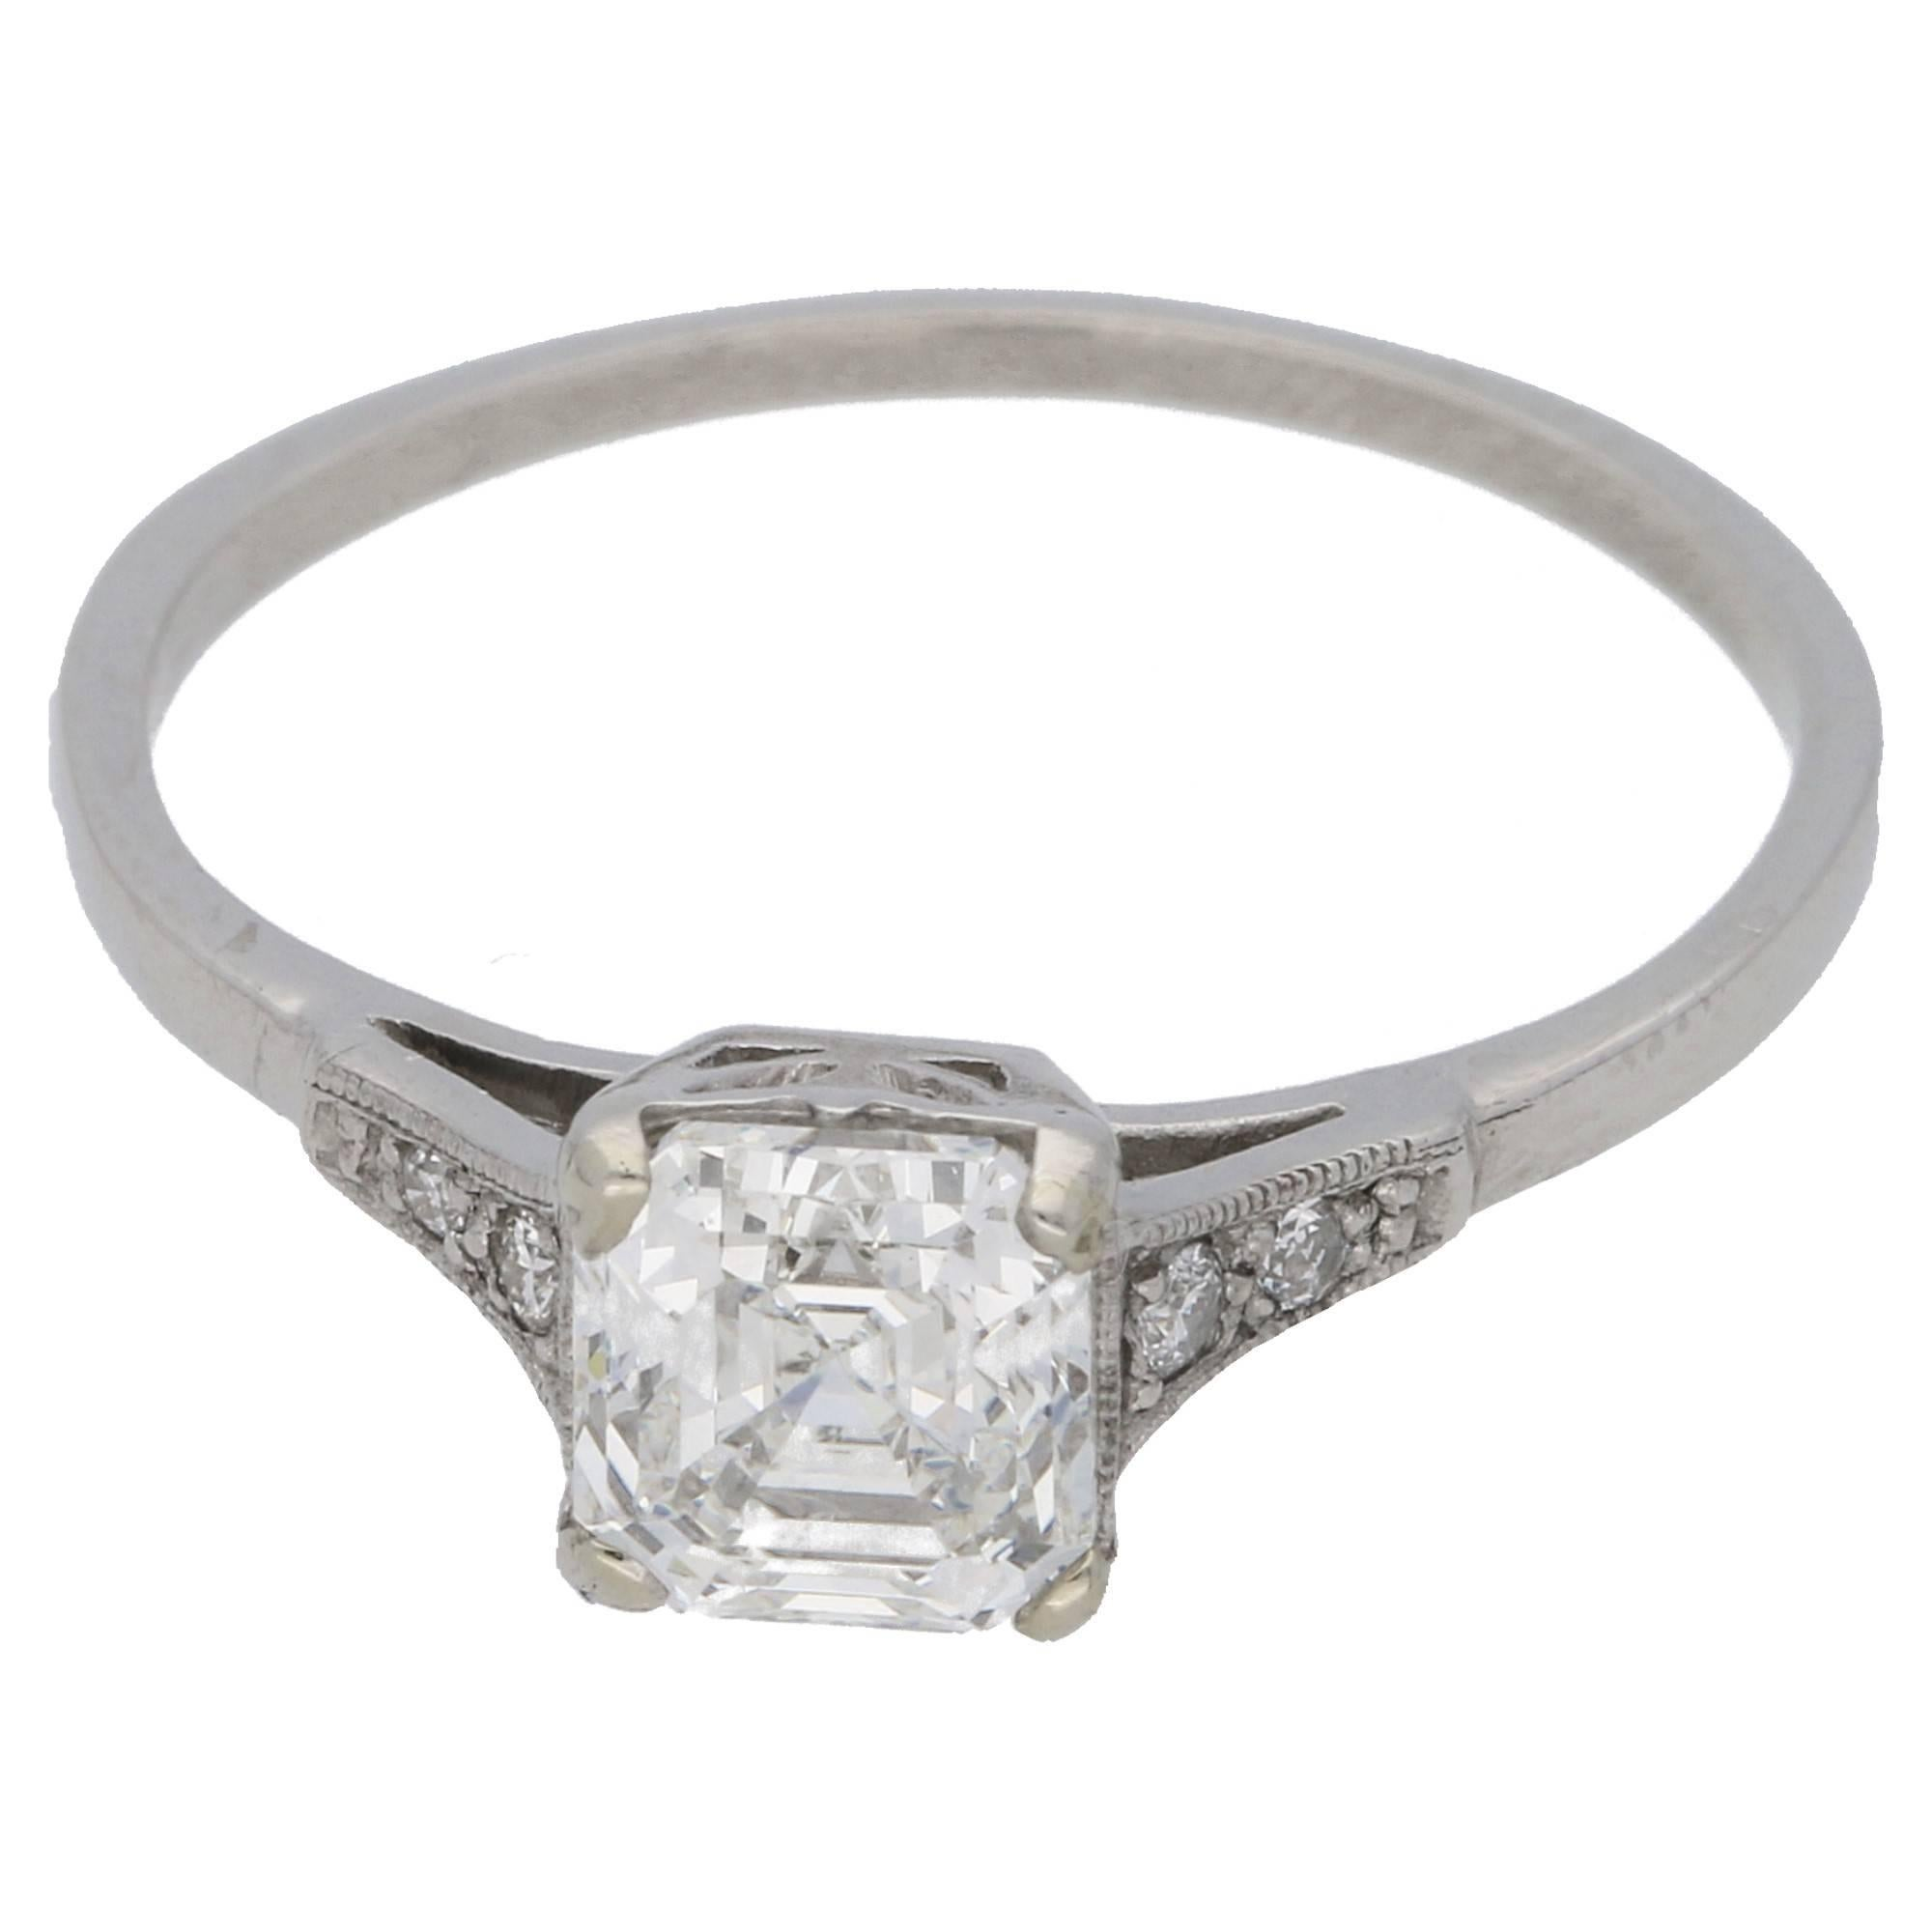 jewellery ring platinum diamond rings campbell products asscher gia bespoke certified cut engagement